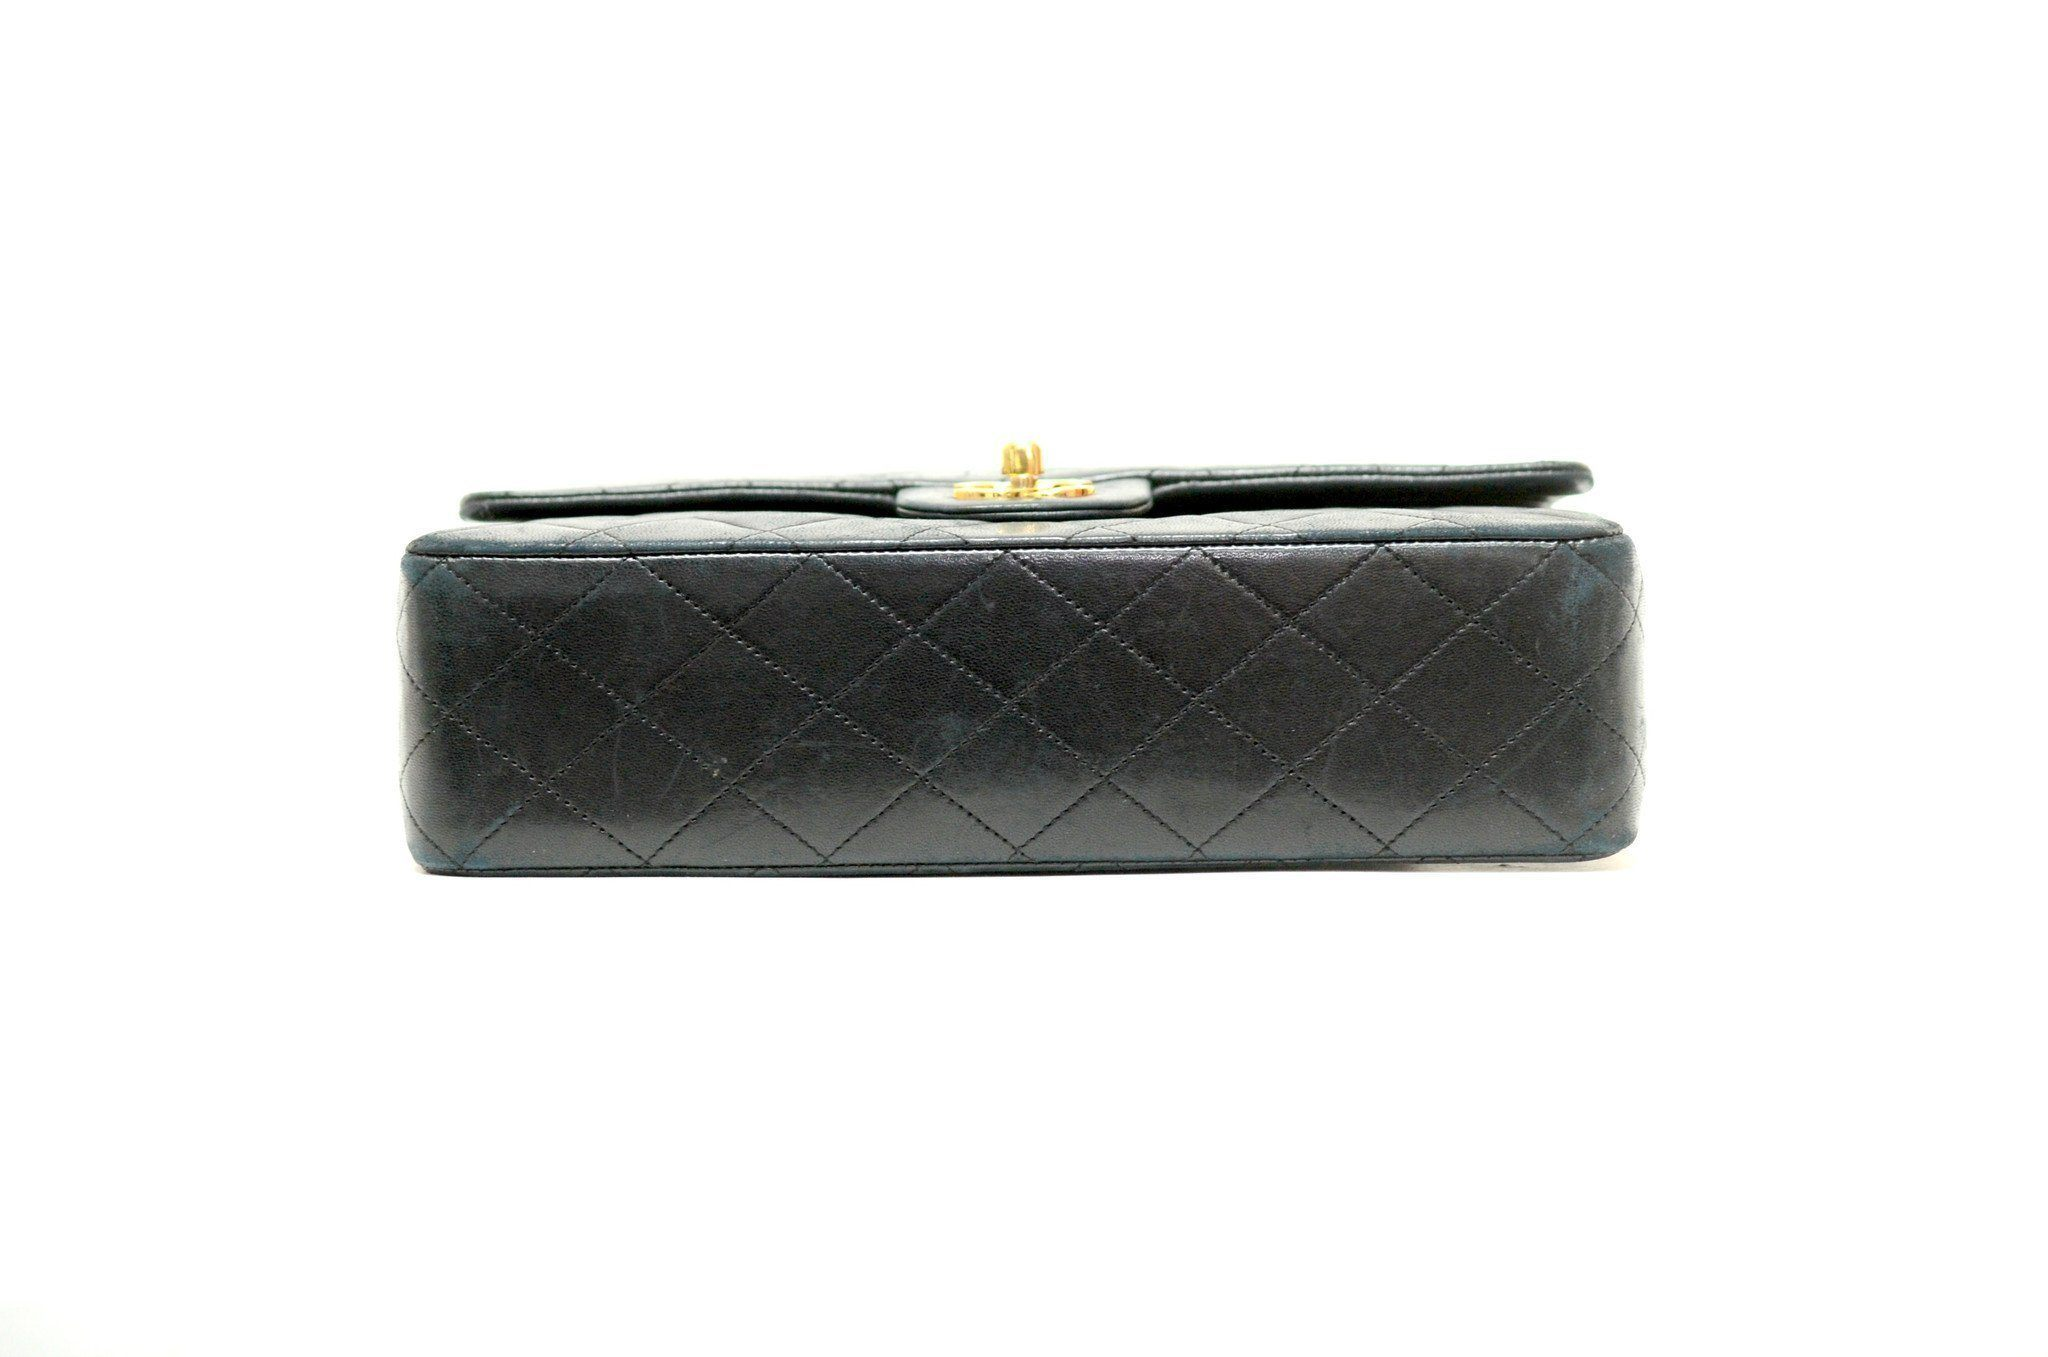 a25558250e08 Authentic Vintage Chanel Bag Handbag in Black Calf Leather with Gold ...